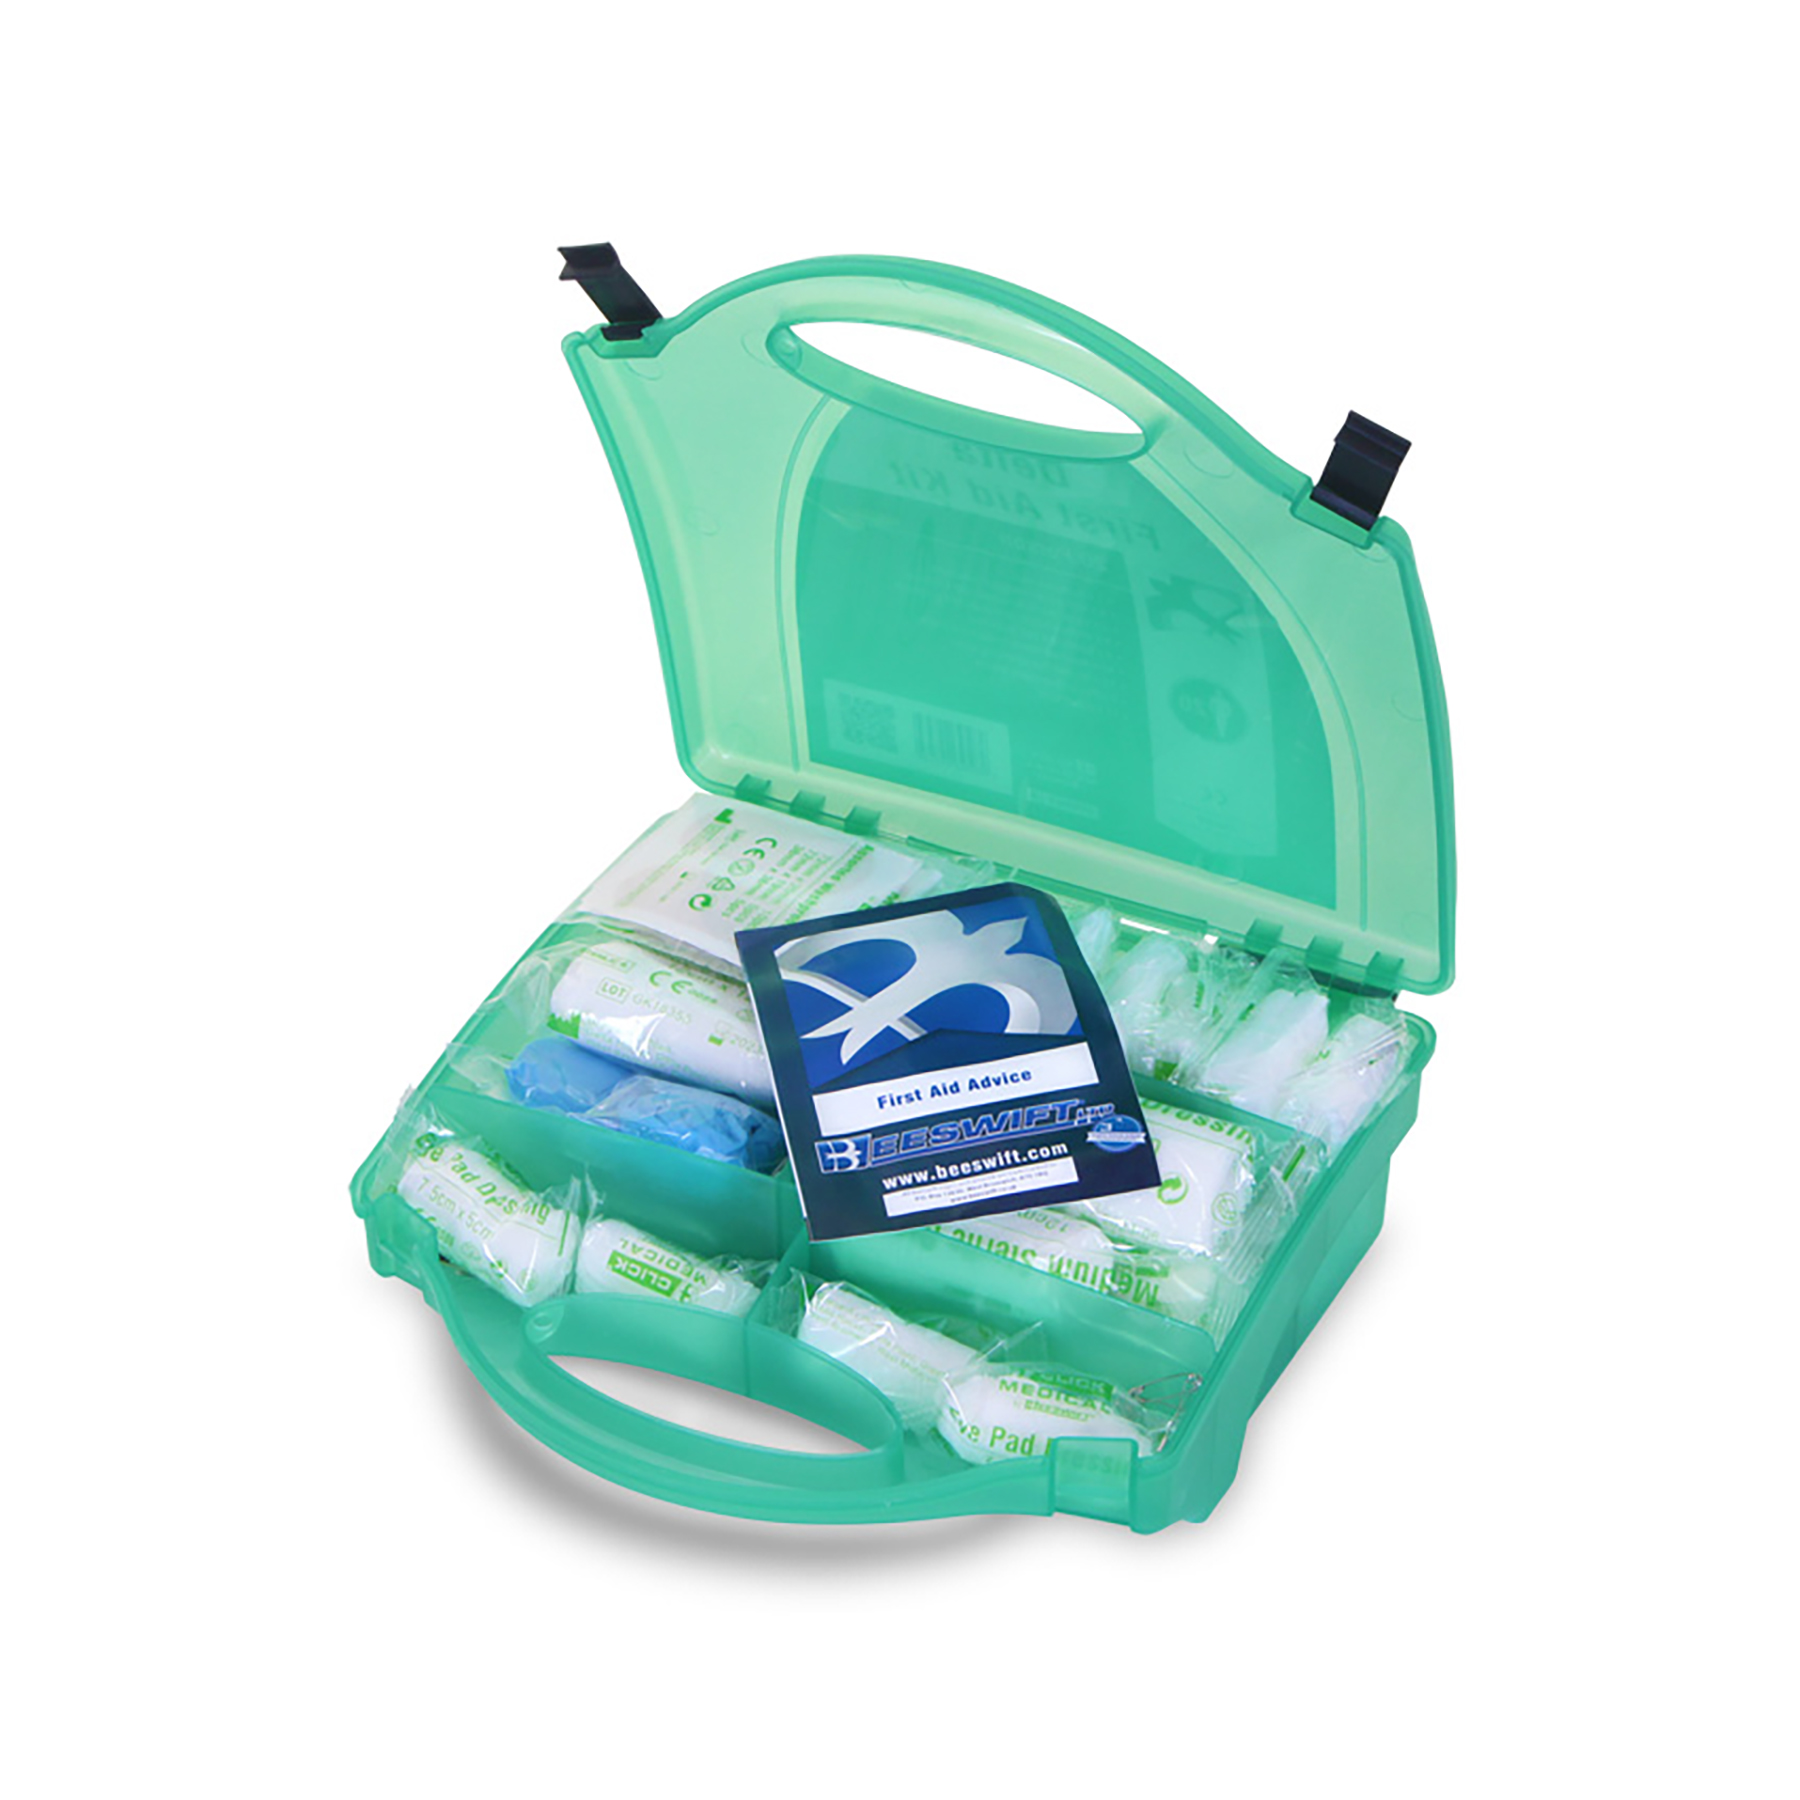 5 Star Facilities First Aid Kit BSI 1-10 Person